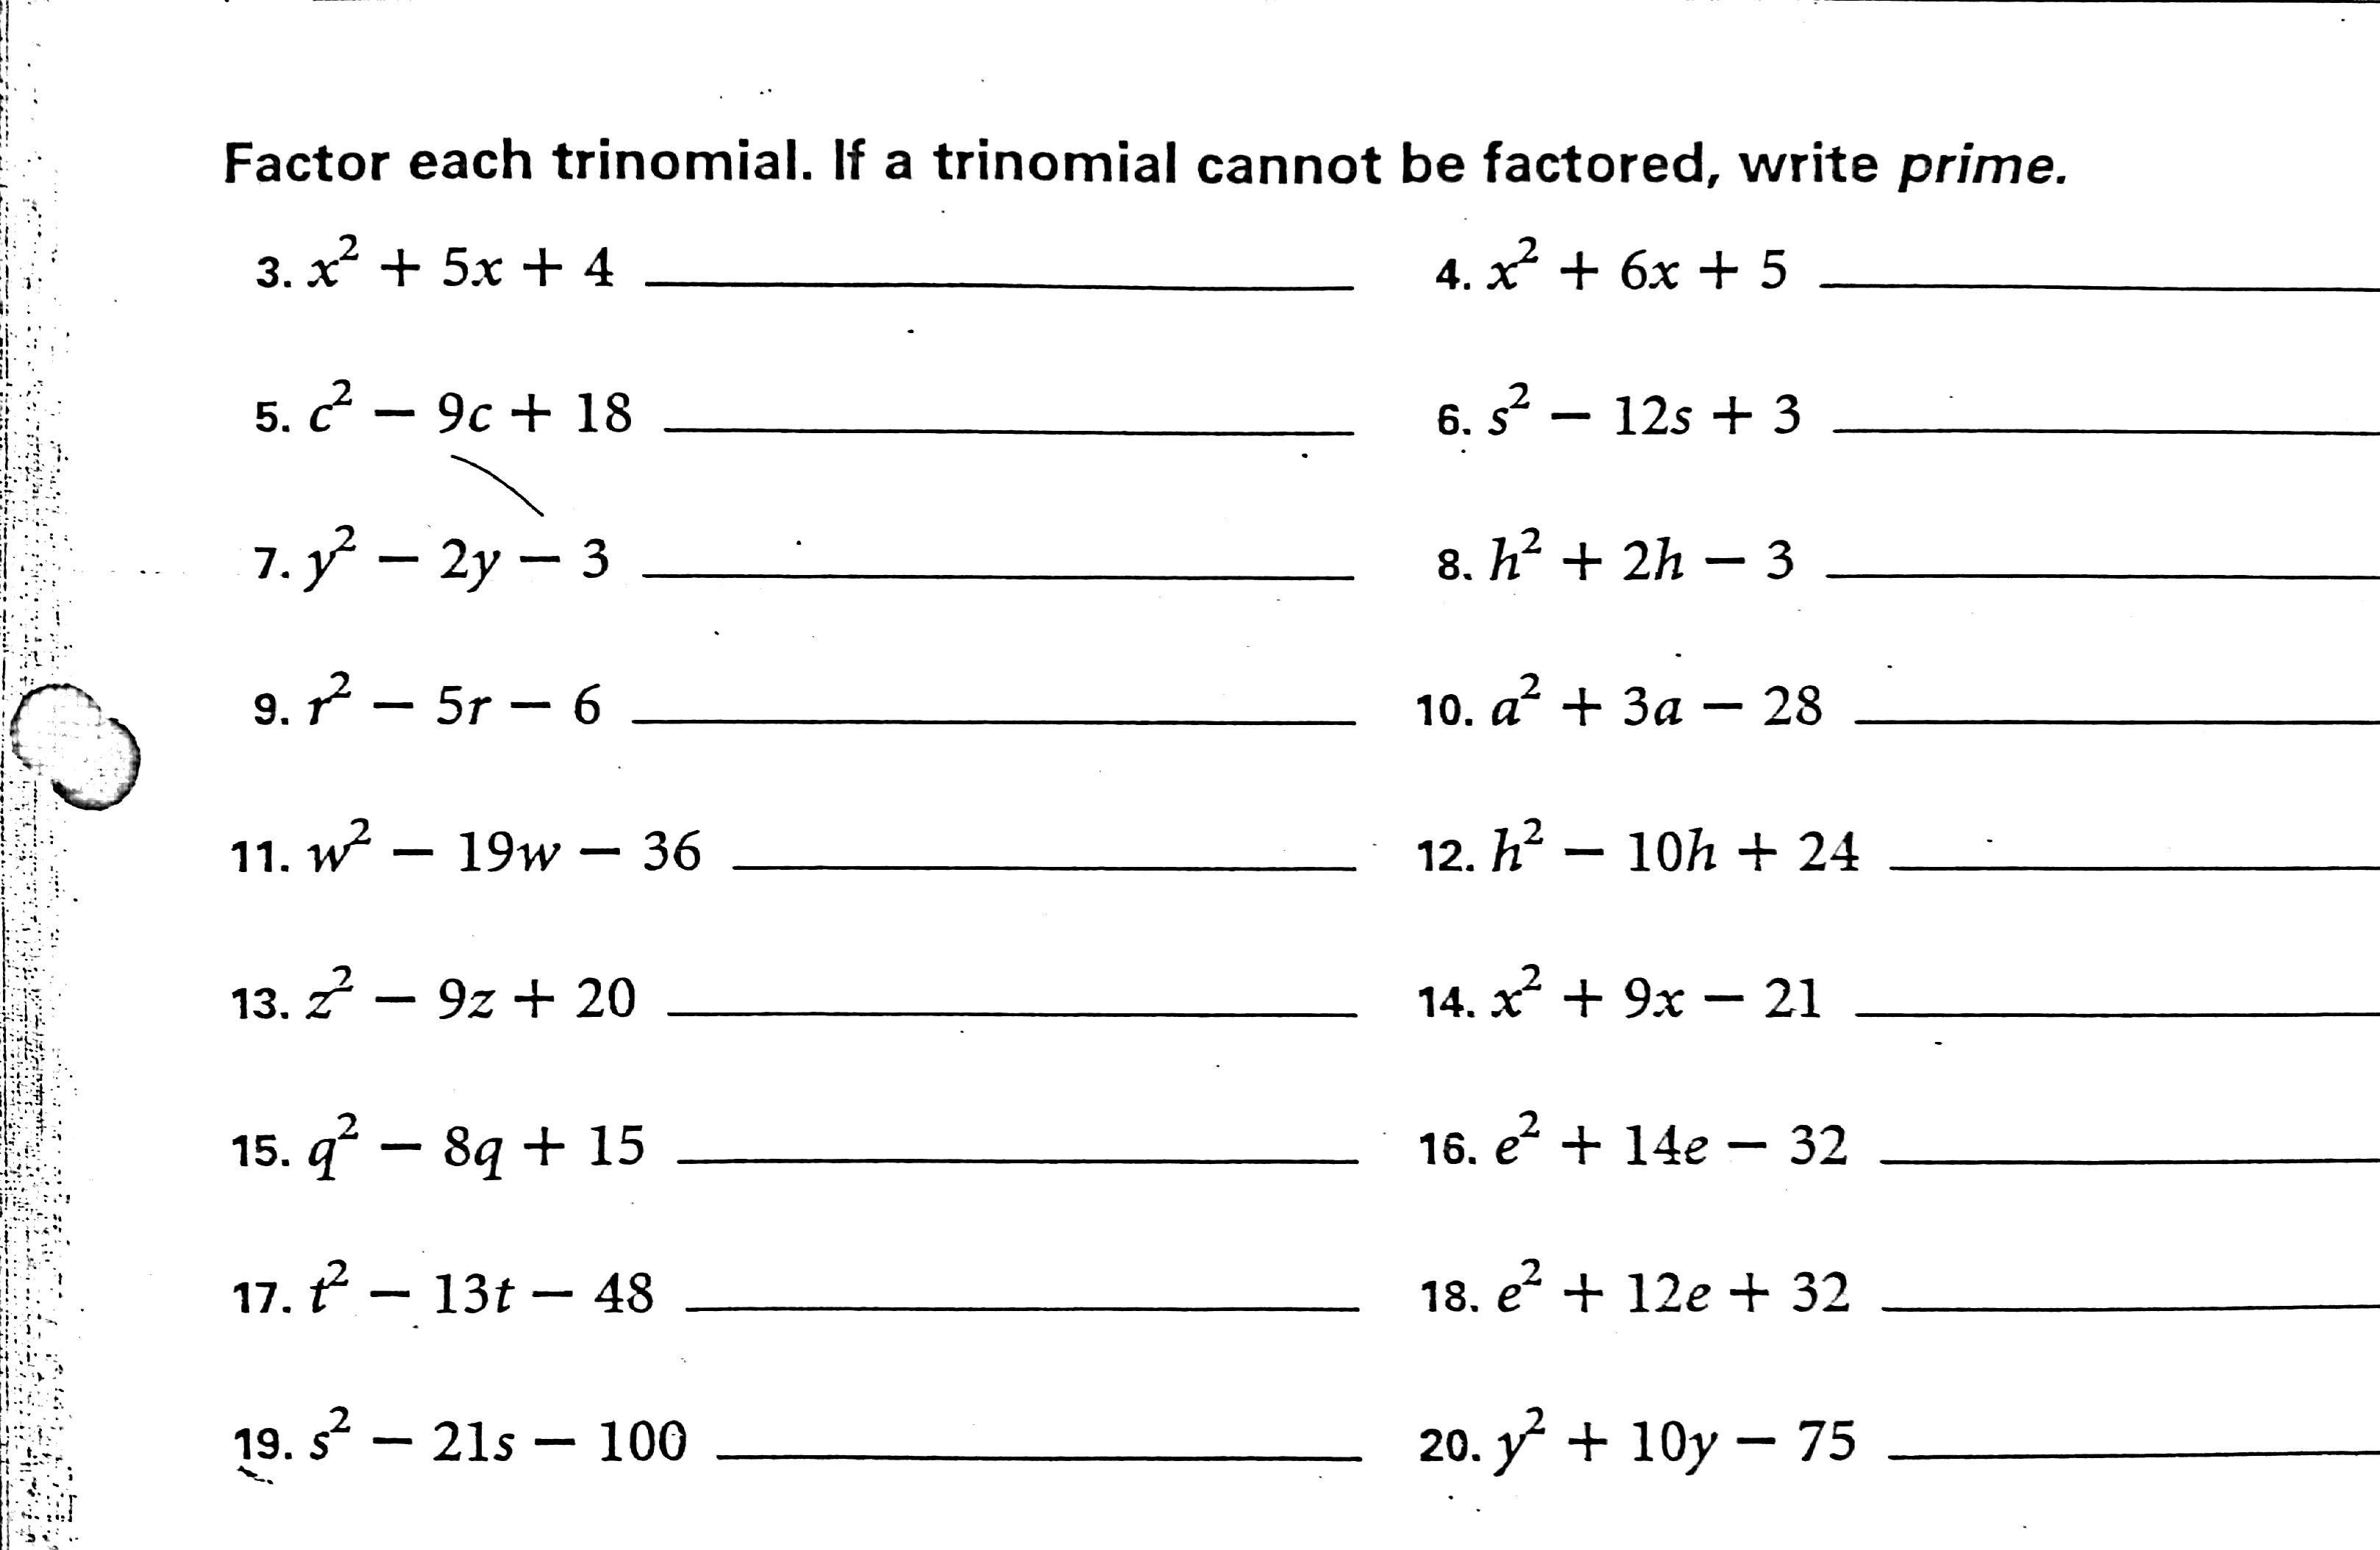 Worksheets Factoring Trinomials Worksheet Answers algebra 1 assignments swenson math factoring trinomials jpg